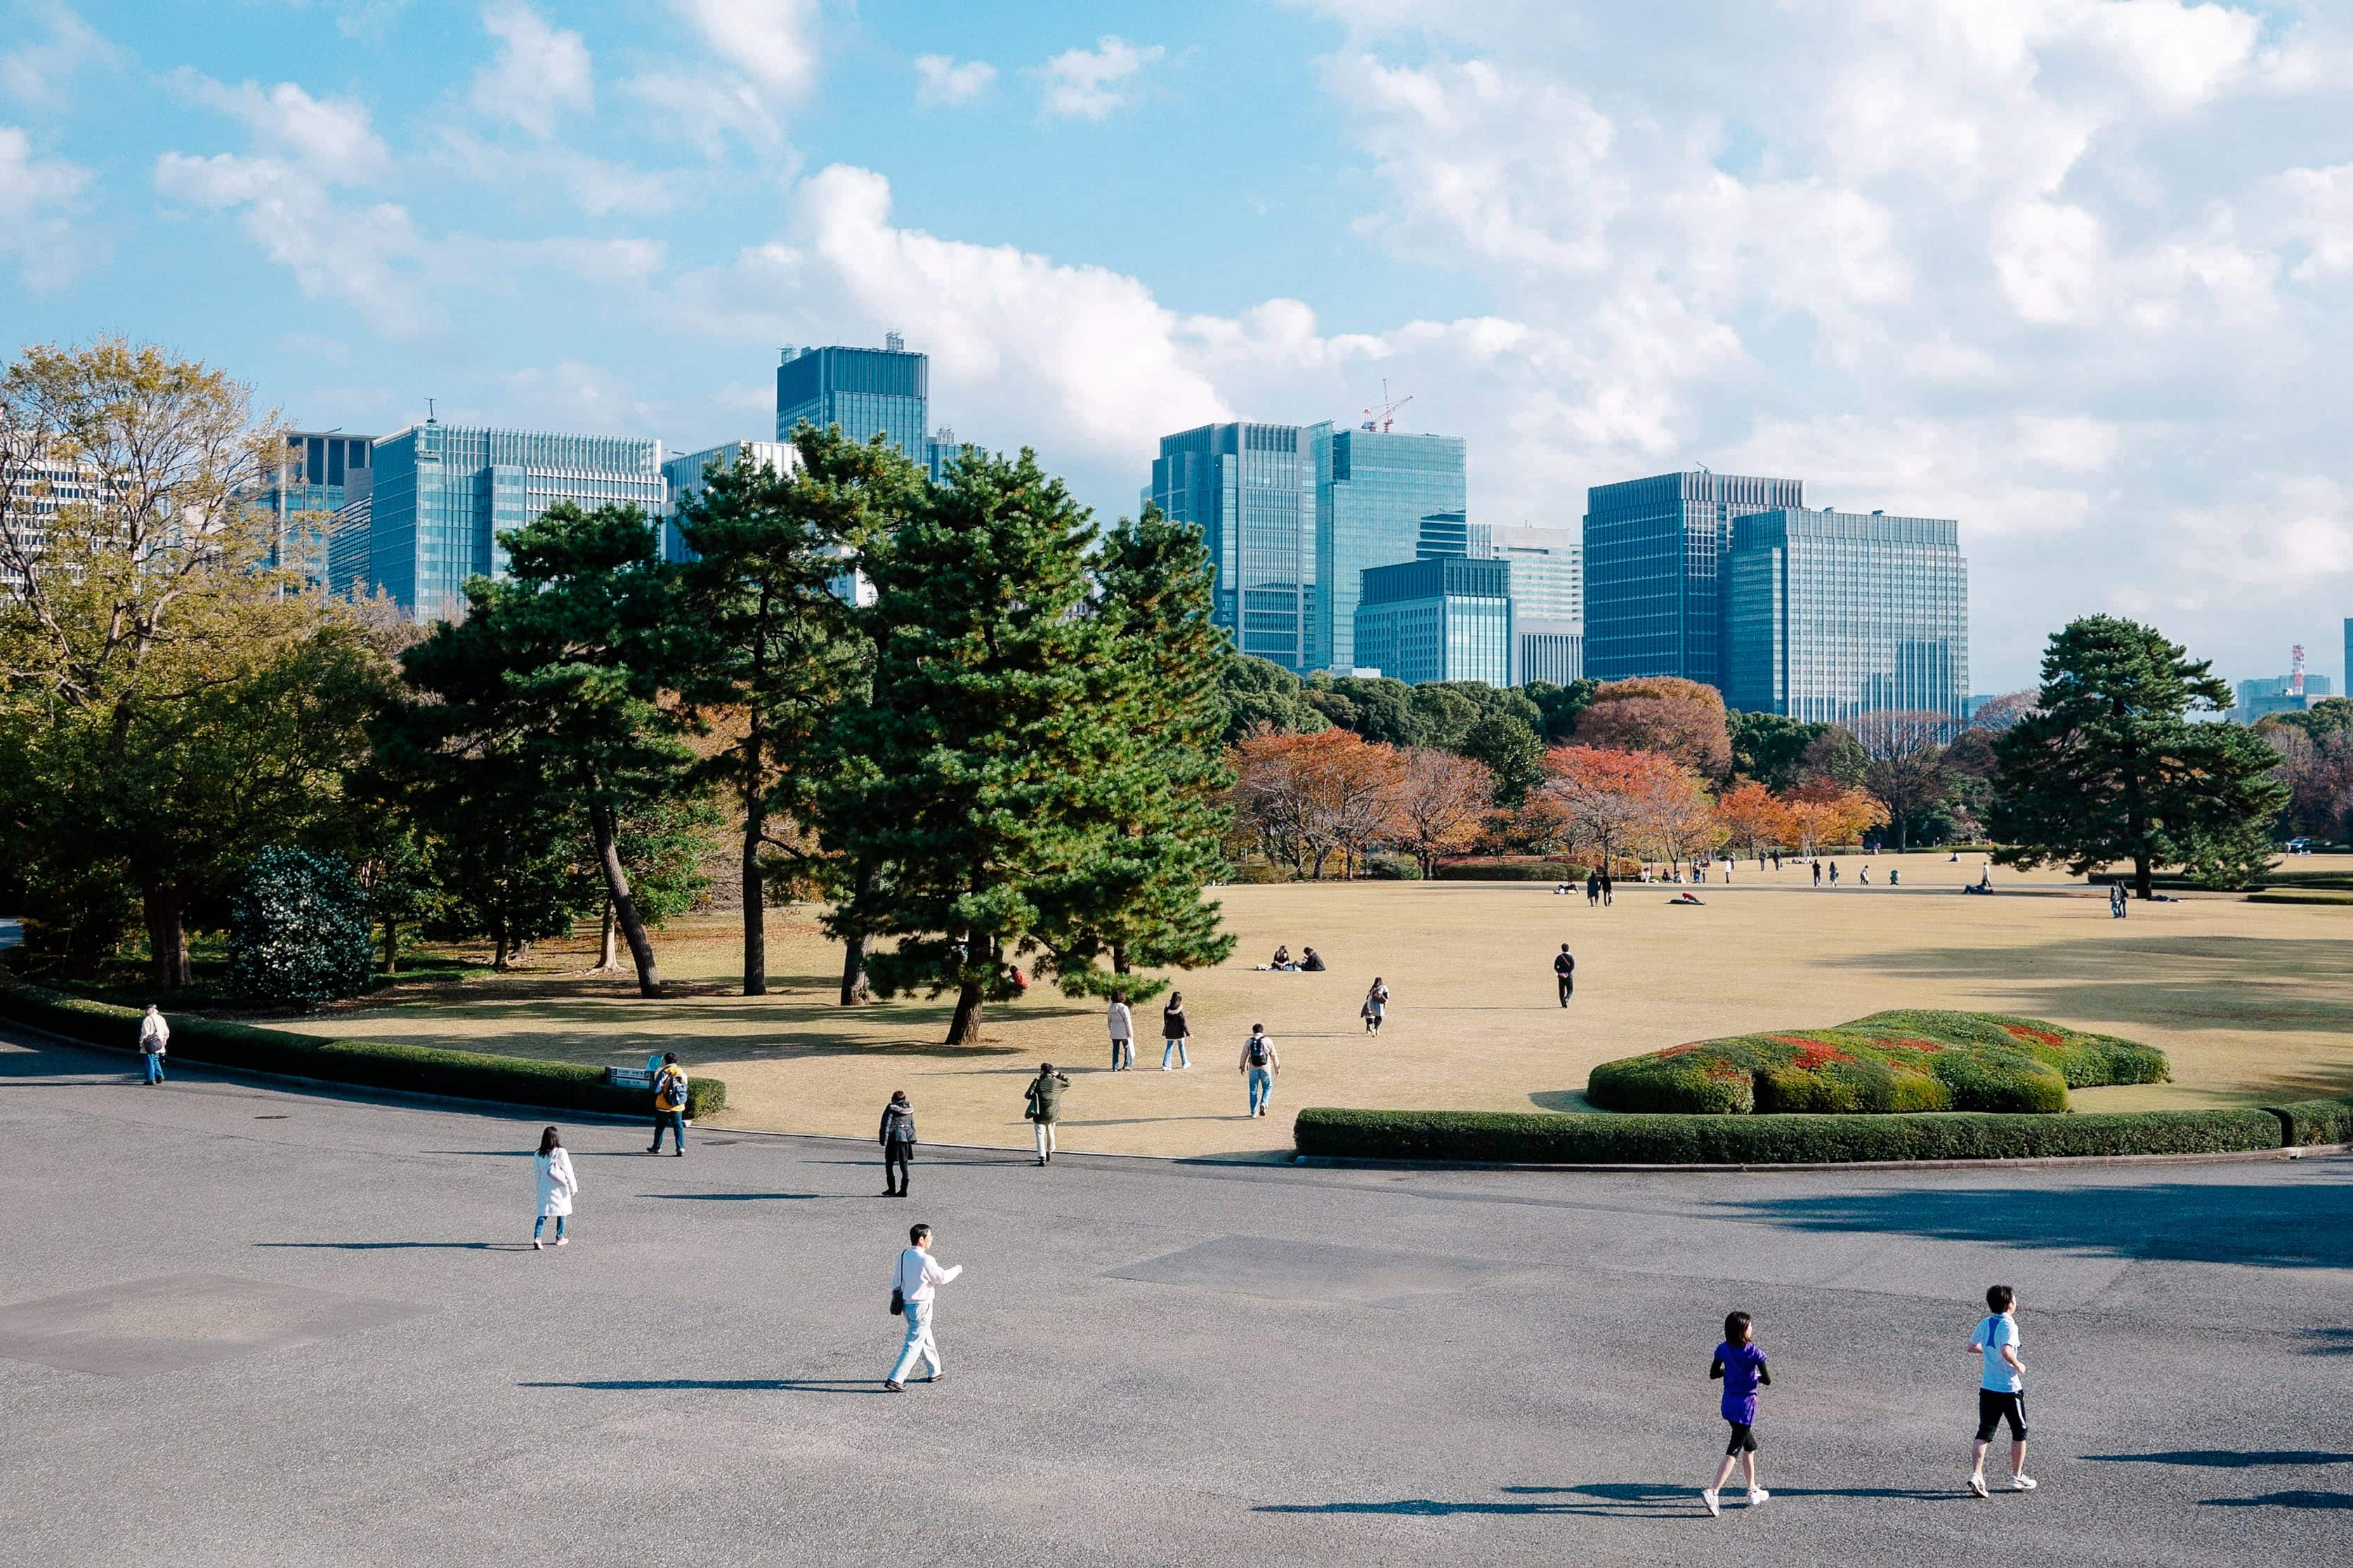 Park gardens in the grounds of the former Edo Castle